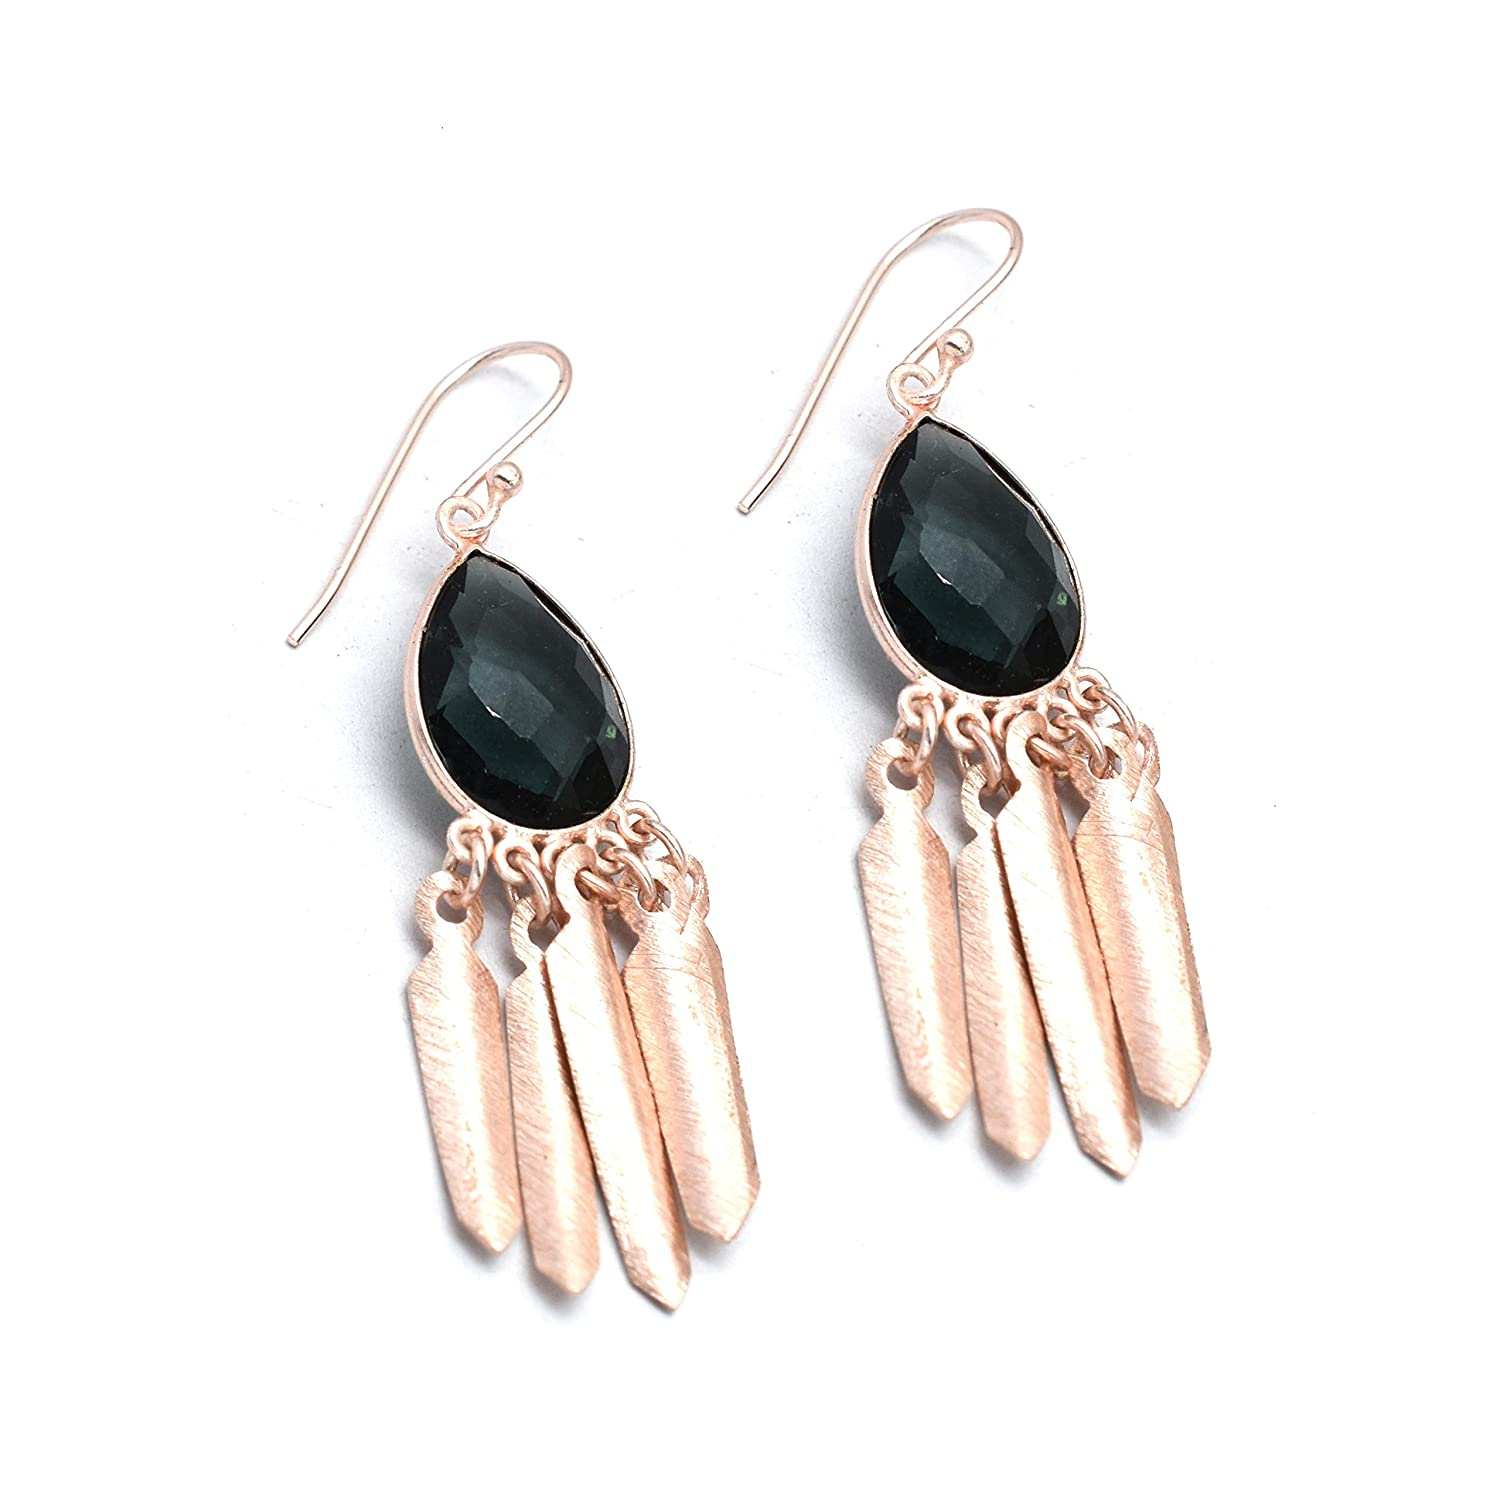 The V Collection earrings rose gold plated faceted london bt pear shape dangling earrings gifts for her